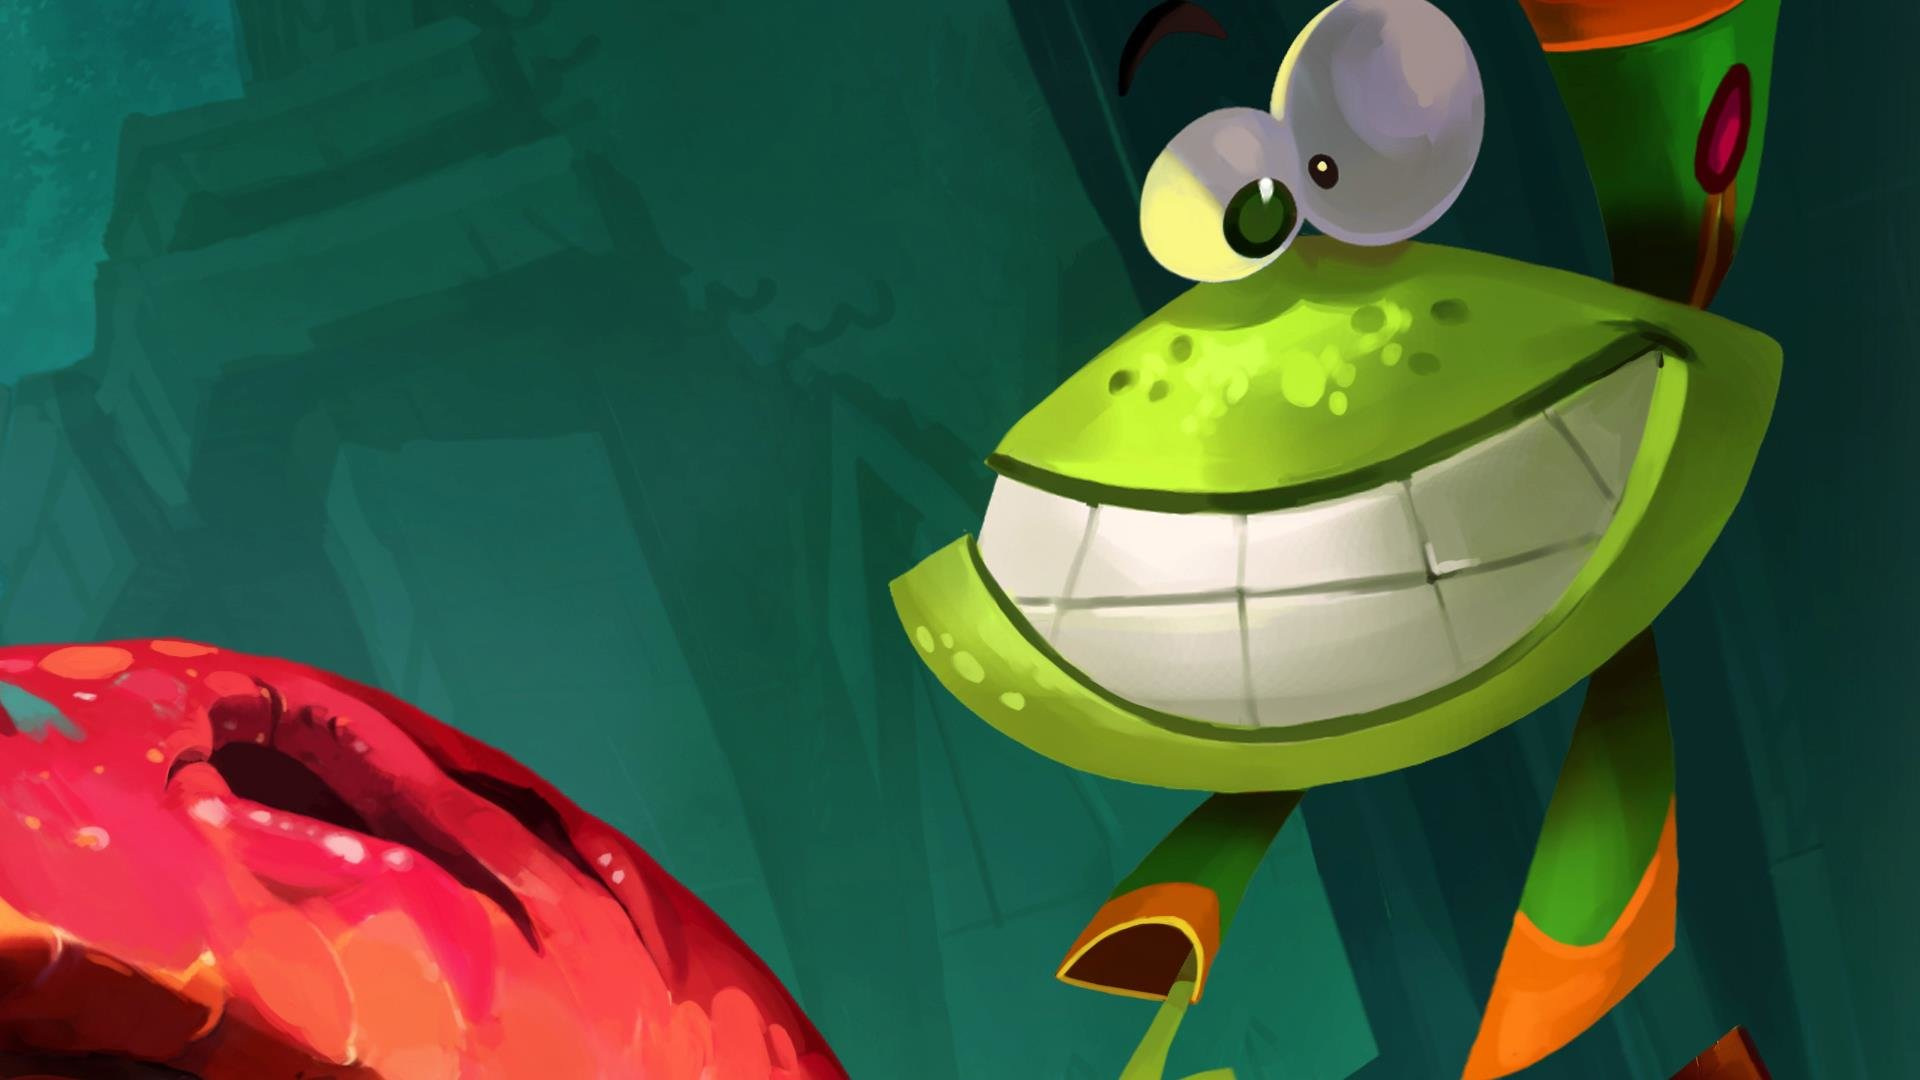 Download full hd Rayman Legends PC wallpaper ID:26528 for free